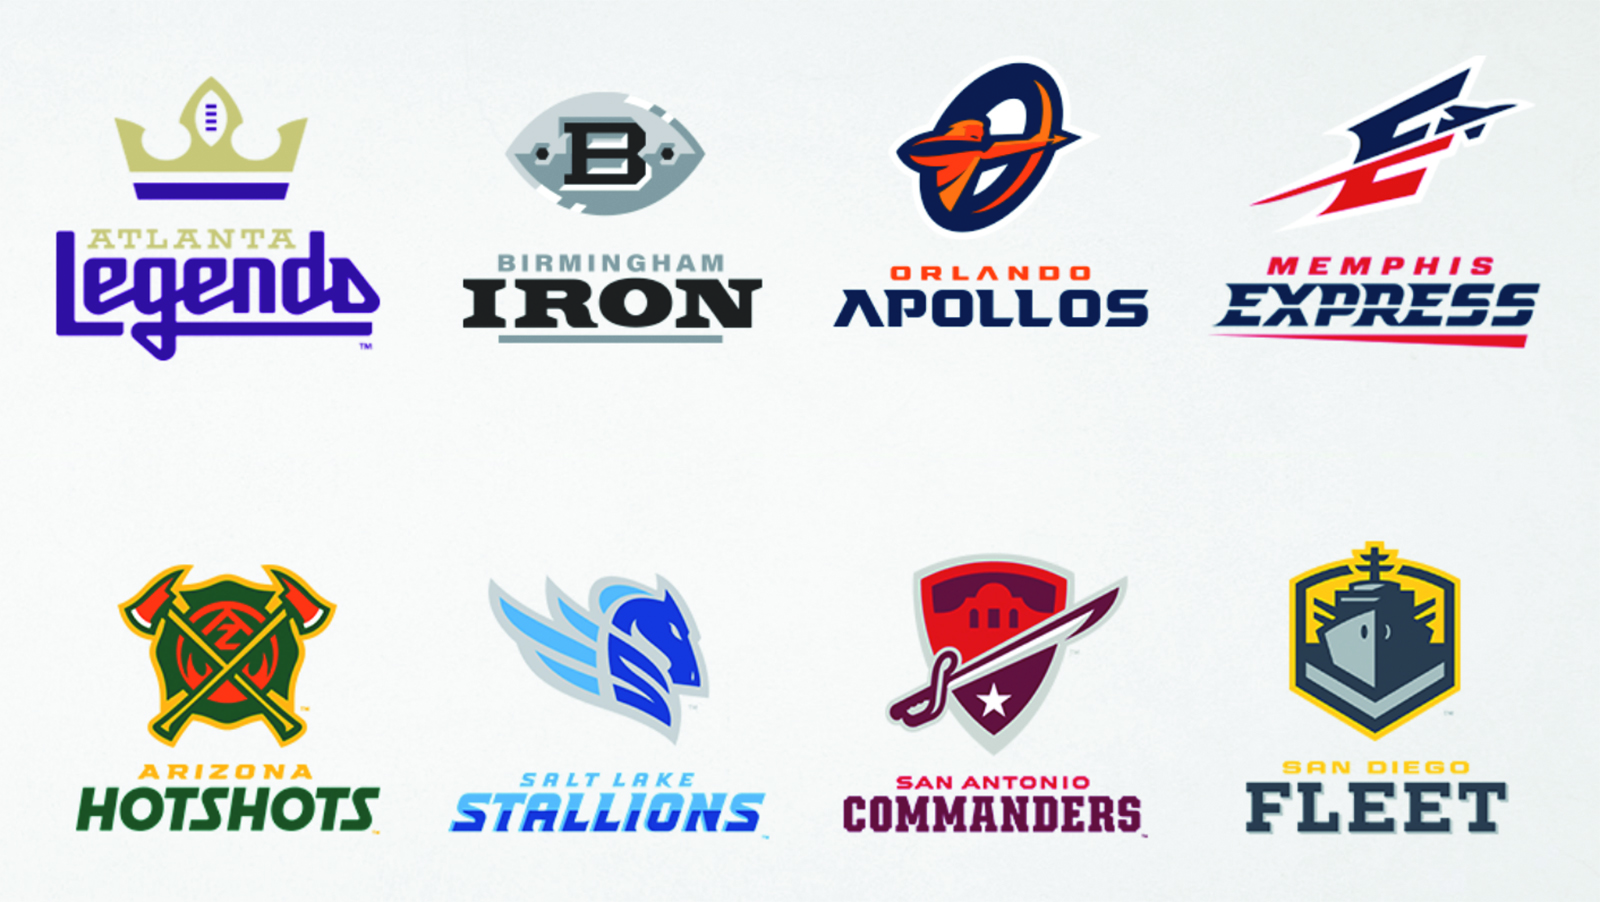 These are the 8 teams for competing in the AAF inaugural season. (Bing Photos picture)